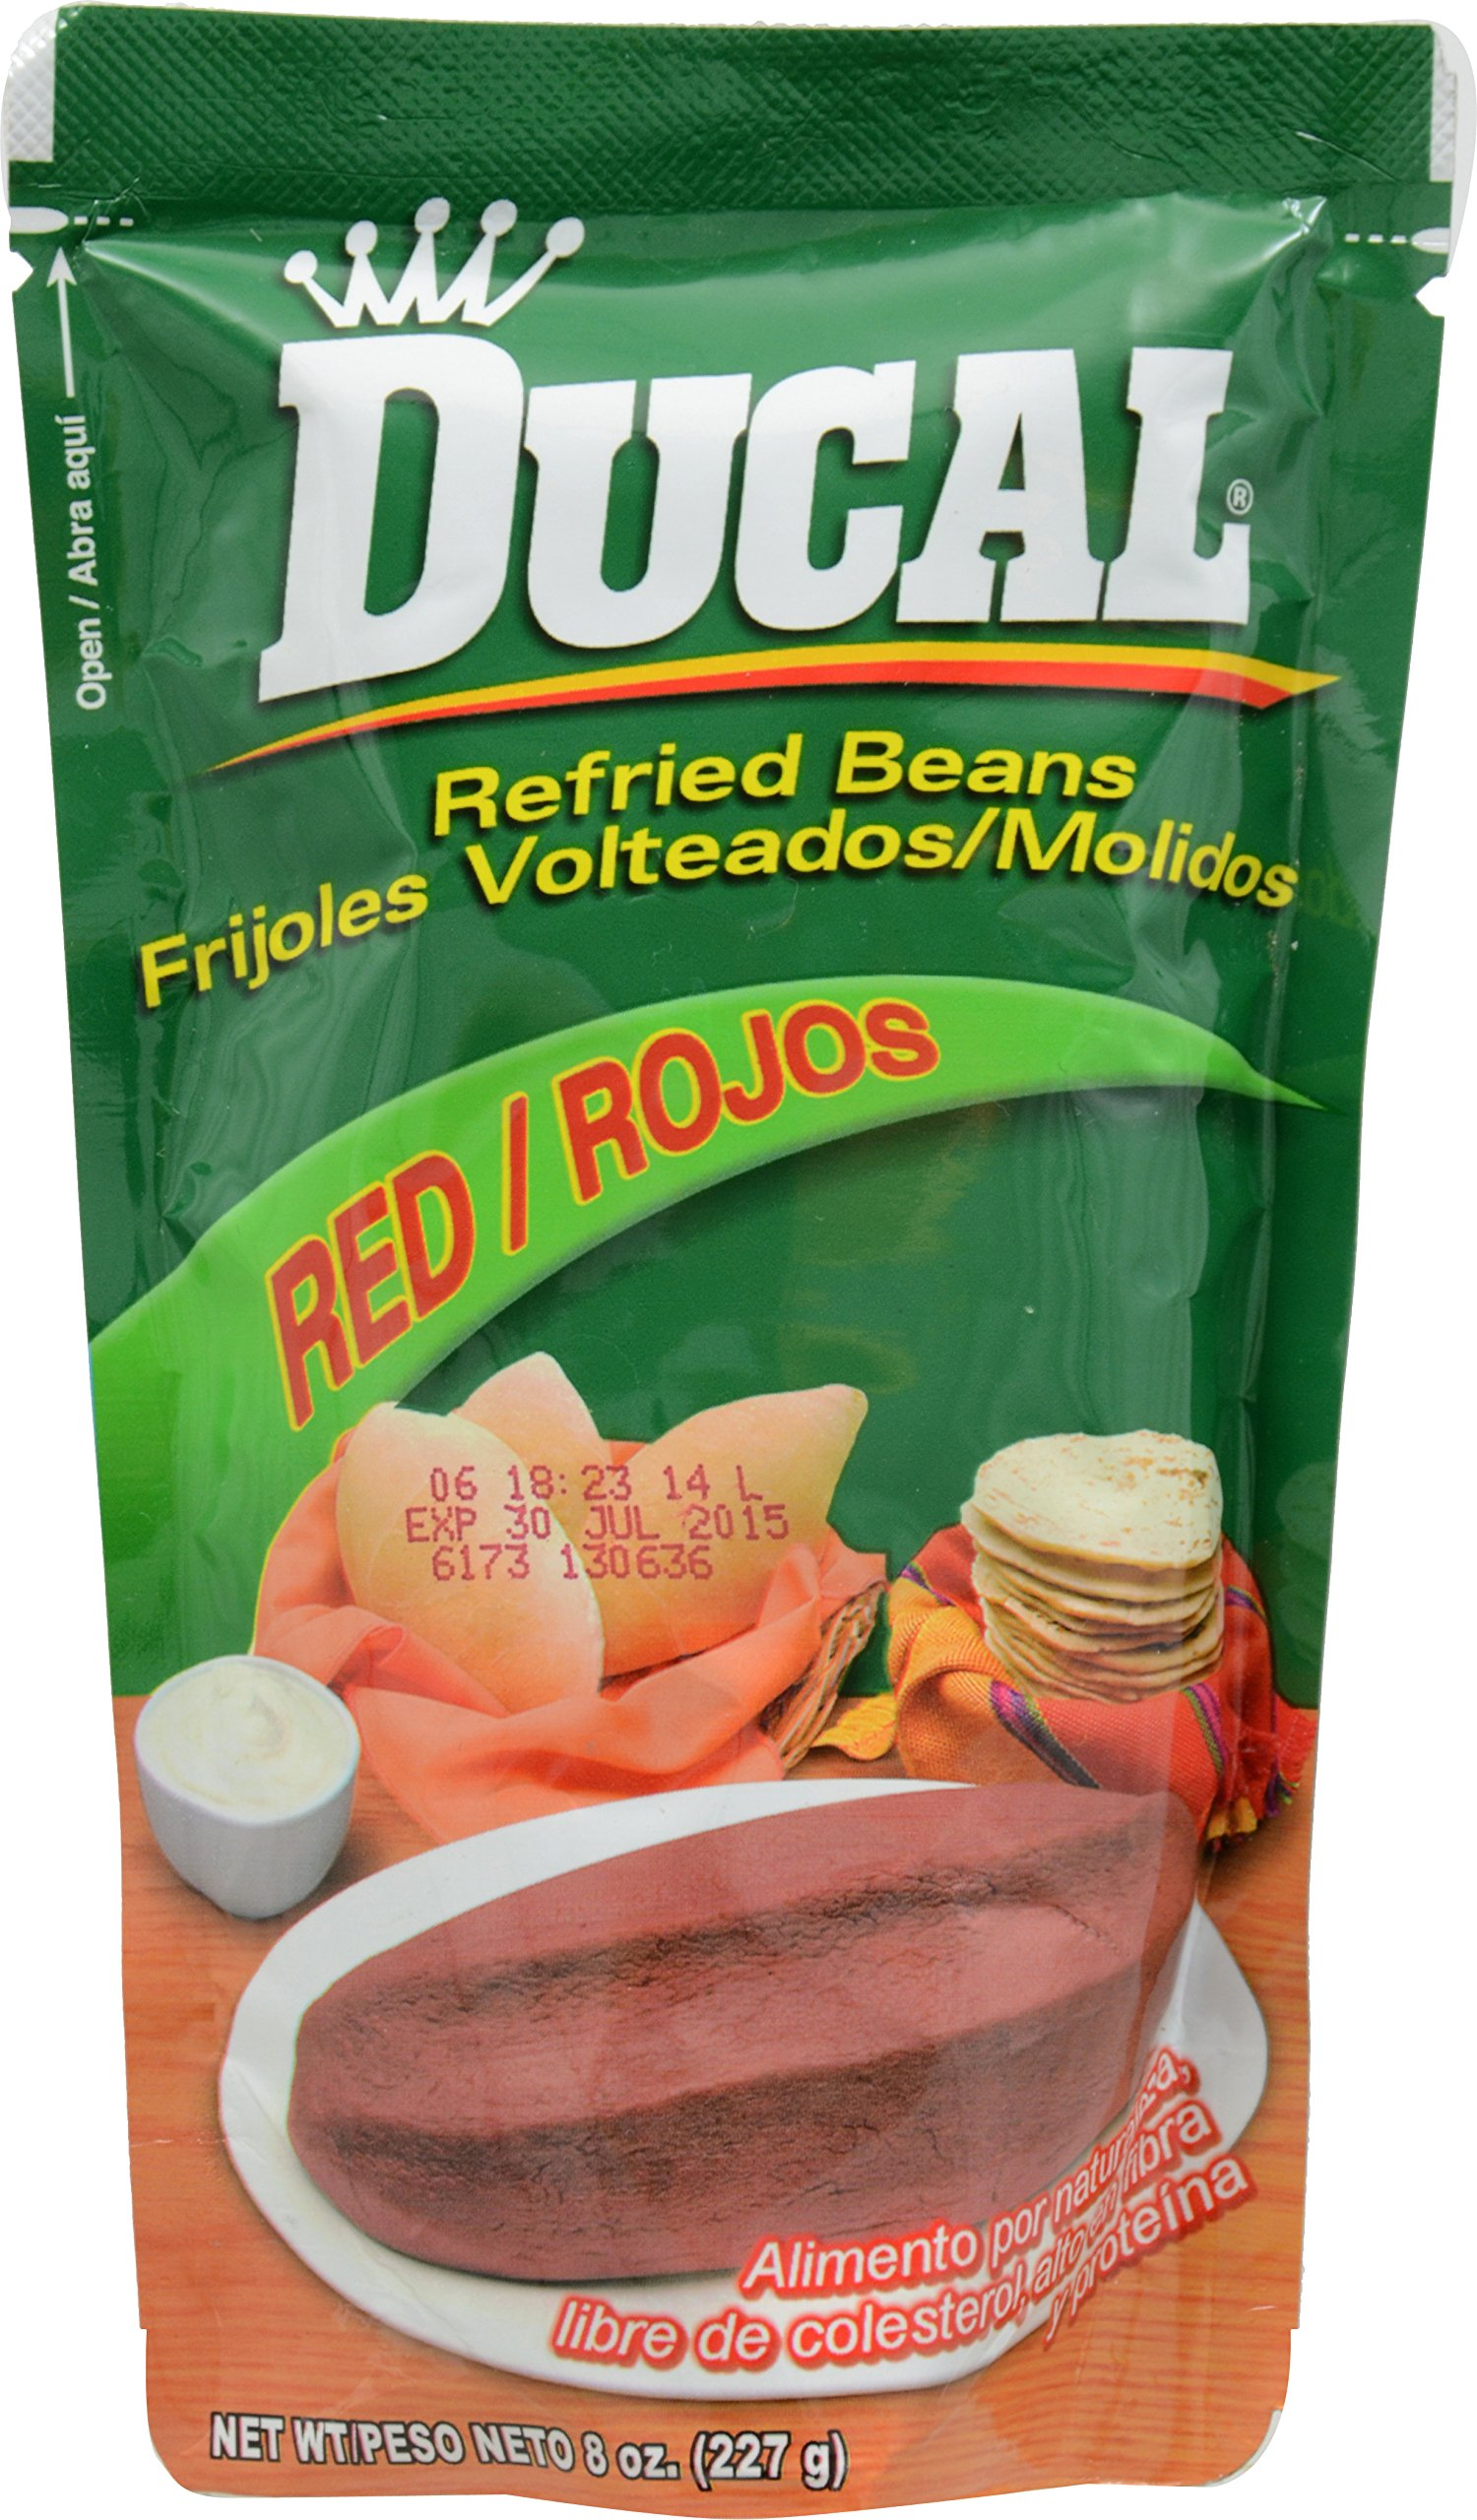 Ducal Refried Red Beans Pouch, 8 Ounce (Pack of 24) by Ducal (Image #1)